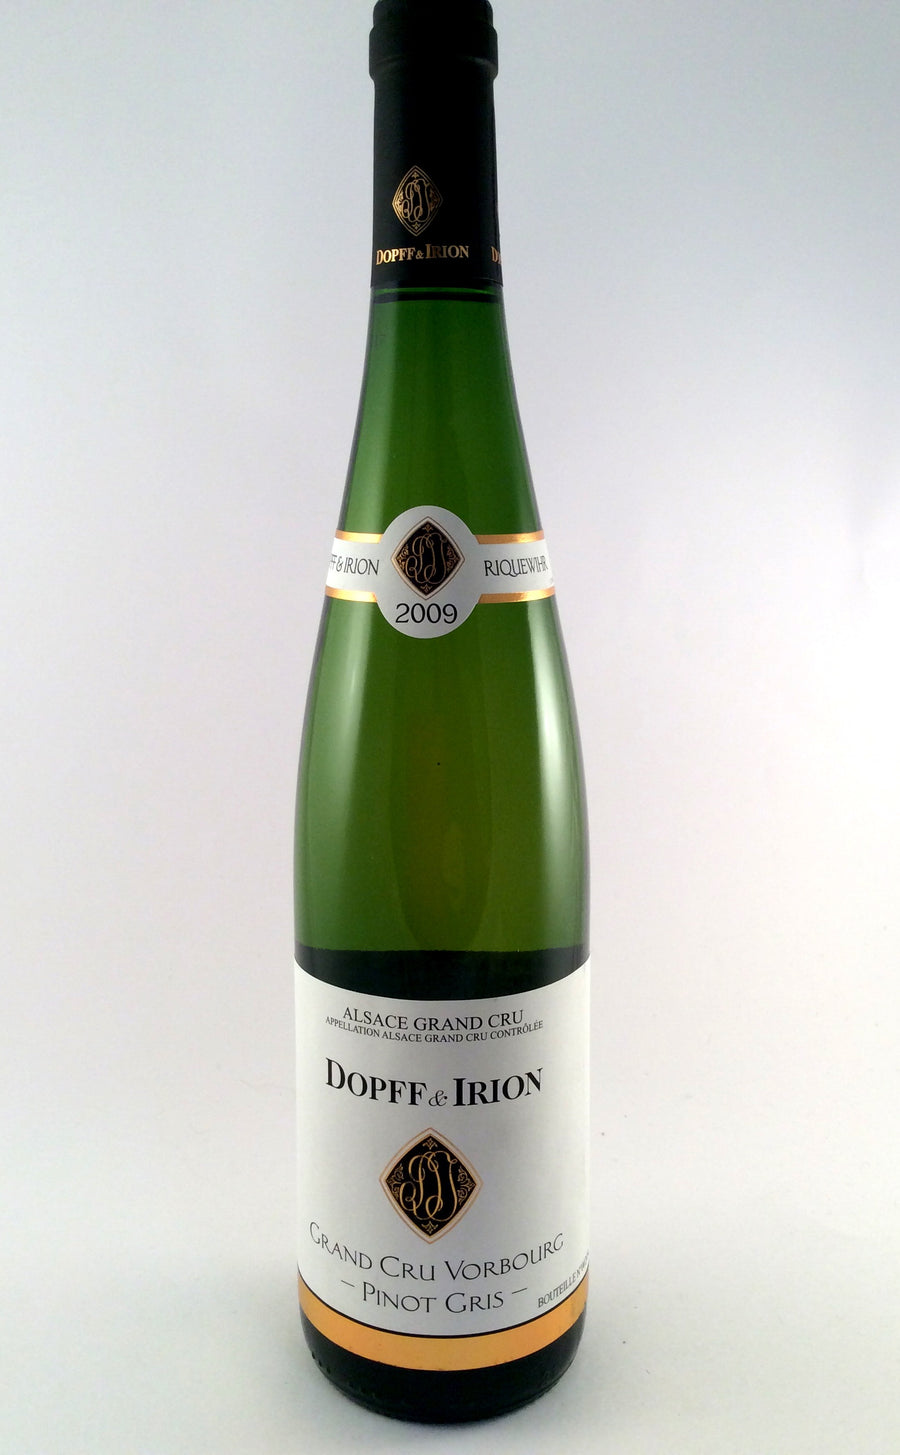 Dopff & Irion Grand Cru Vorbourg Pinot Gris